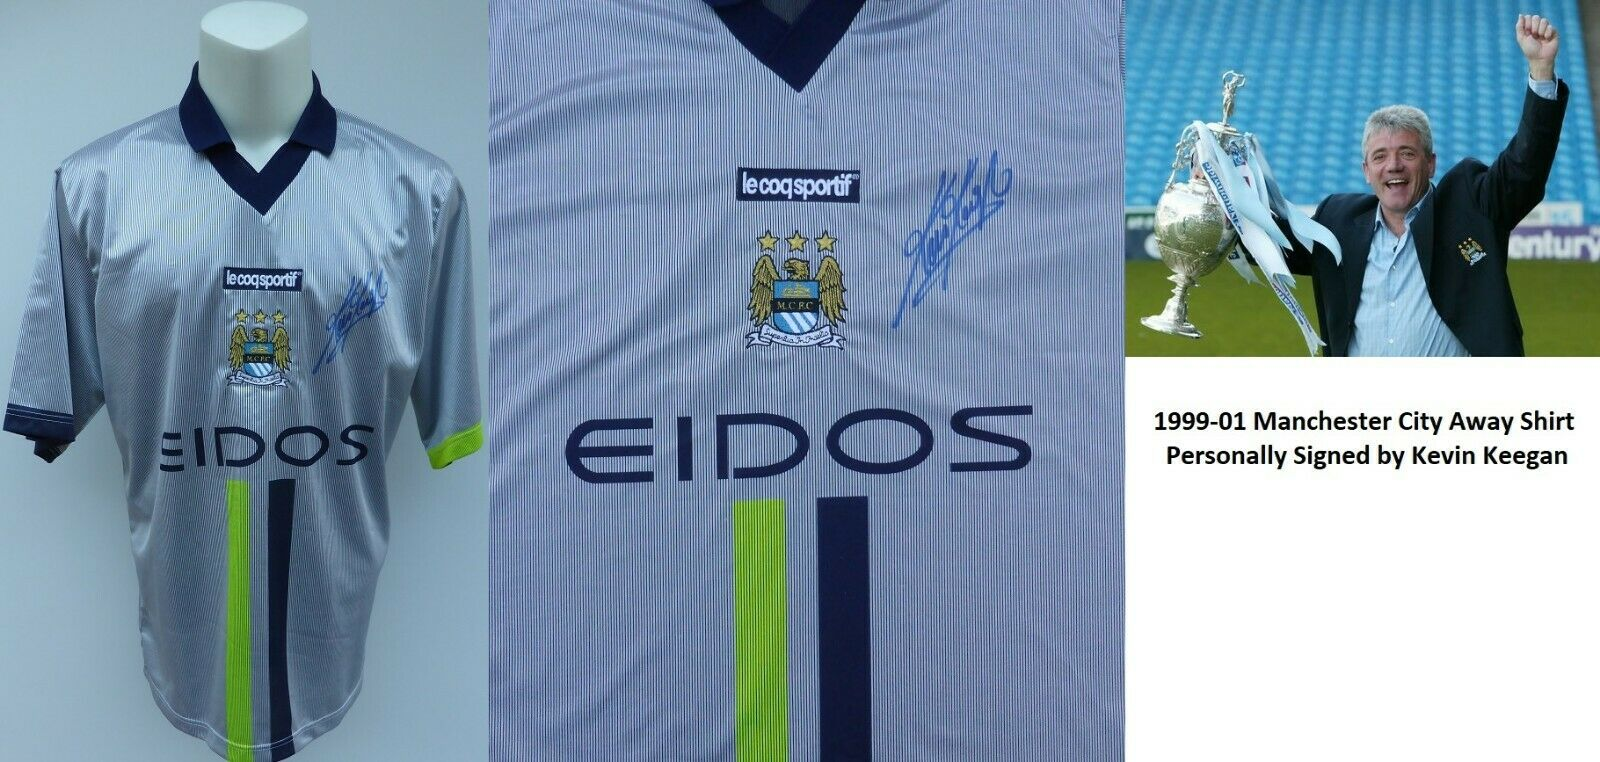 low priced 5d759 c7c46 Details about 1999-01 Original Manchester City Away Shirt Signed by Kevin  Keegan COA (15285)